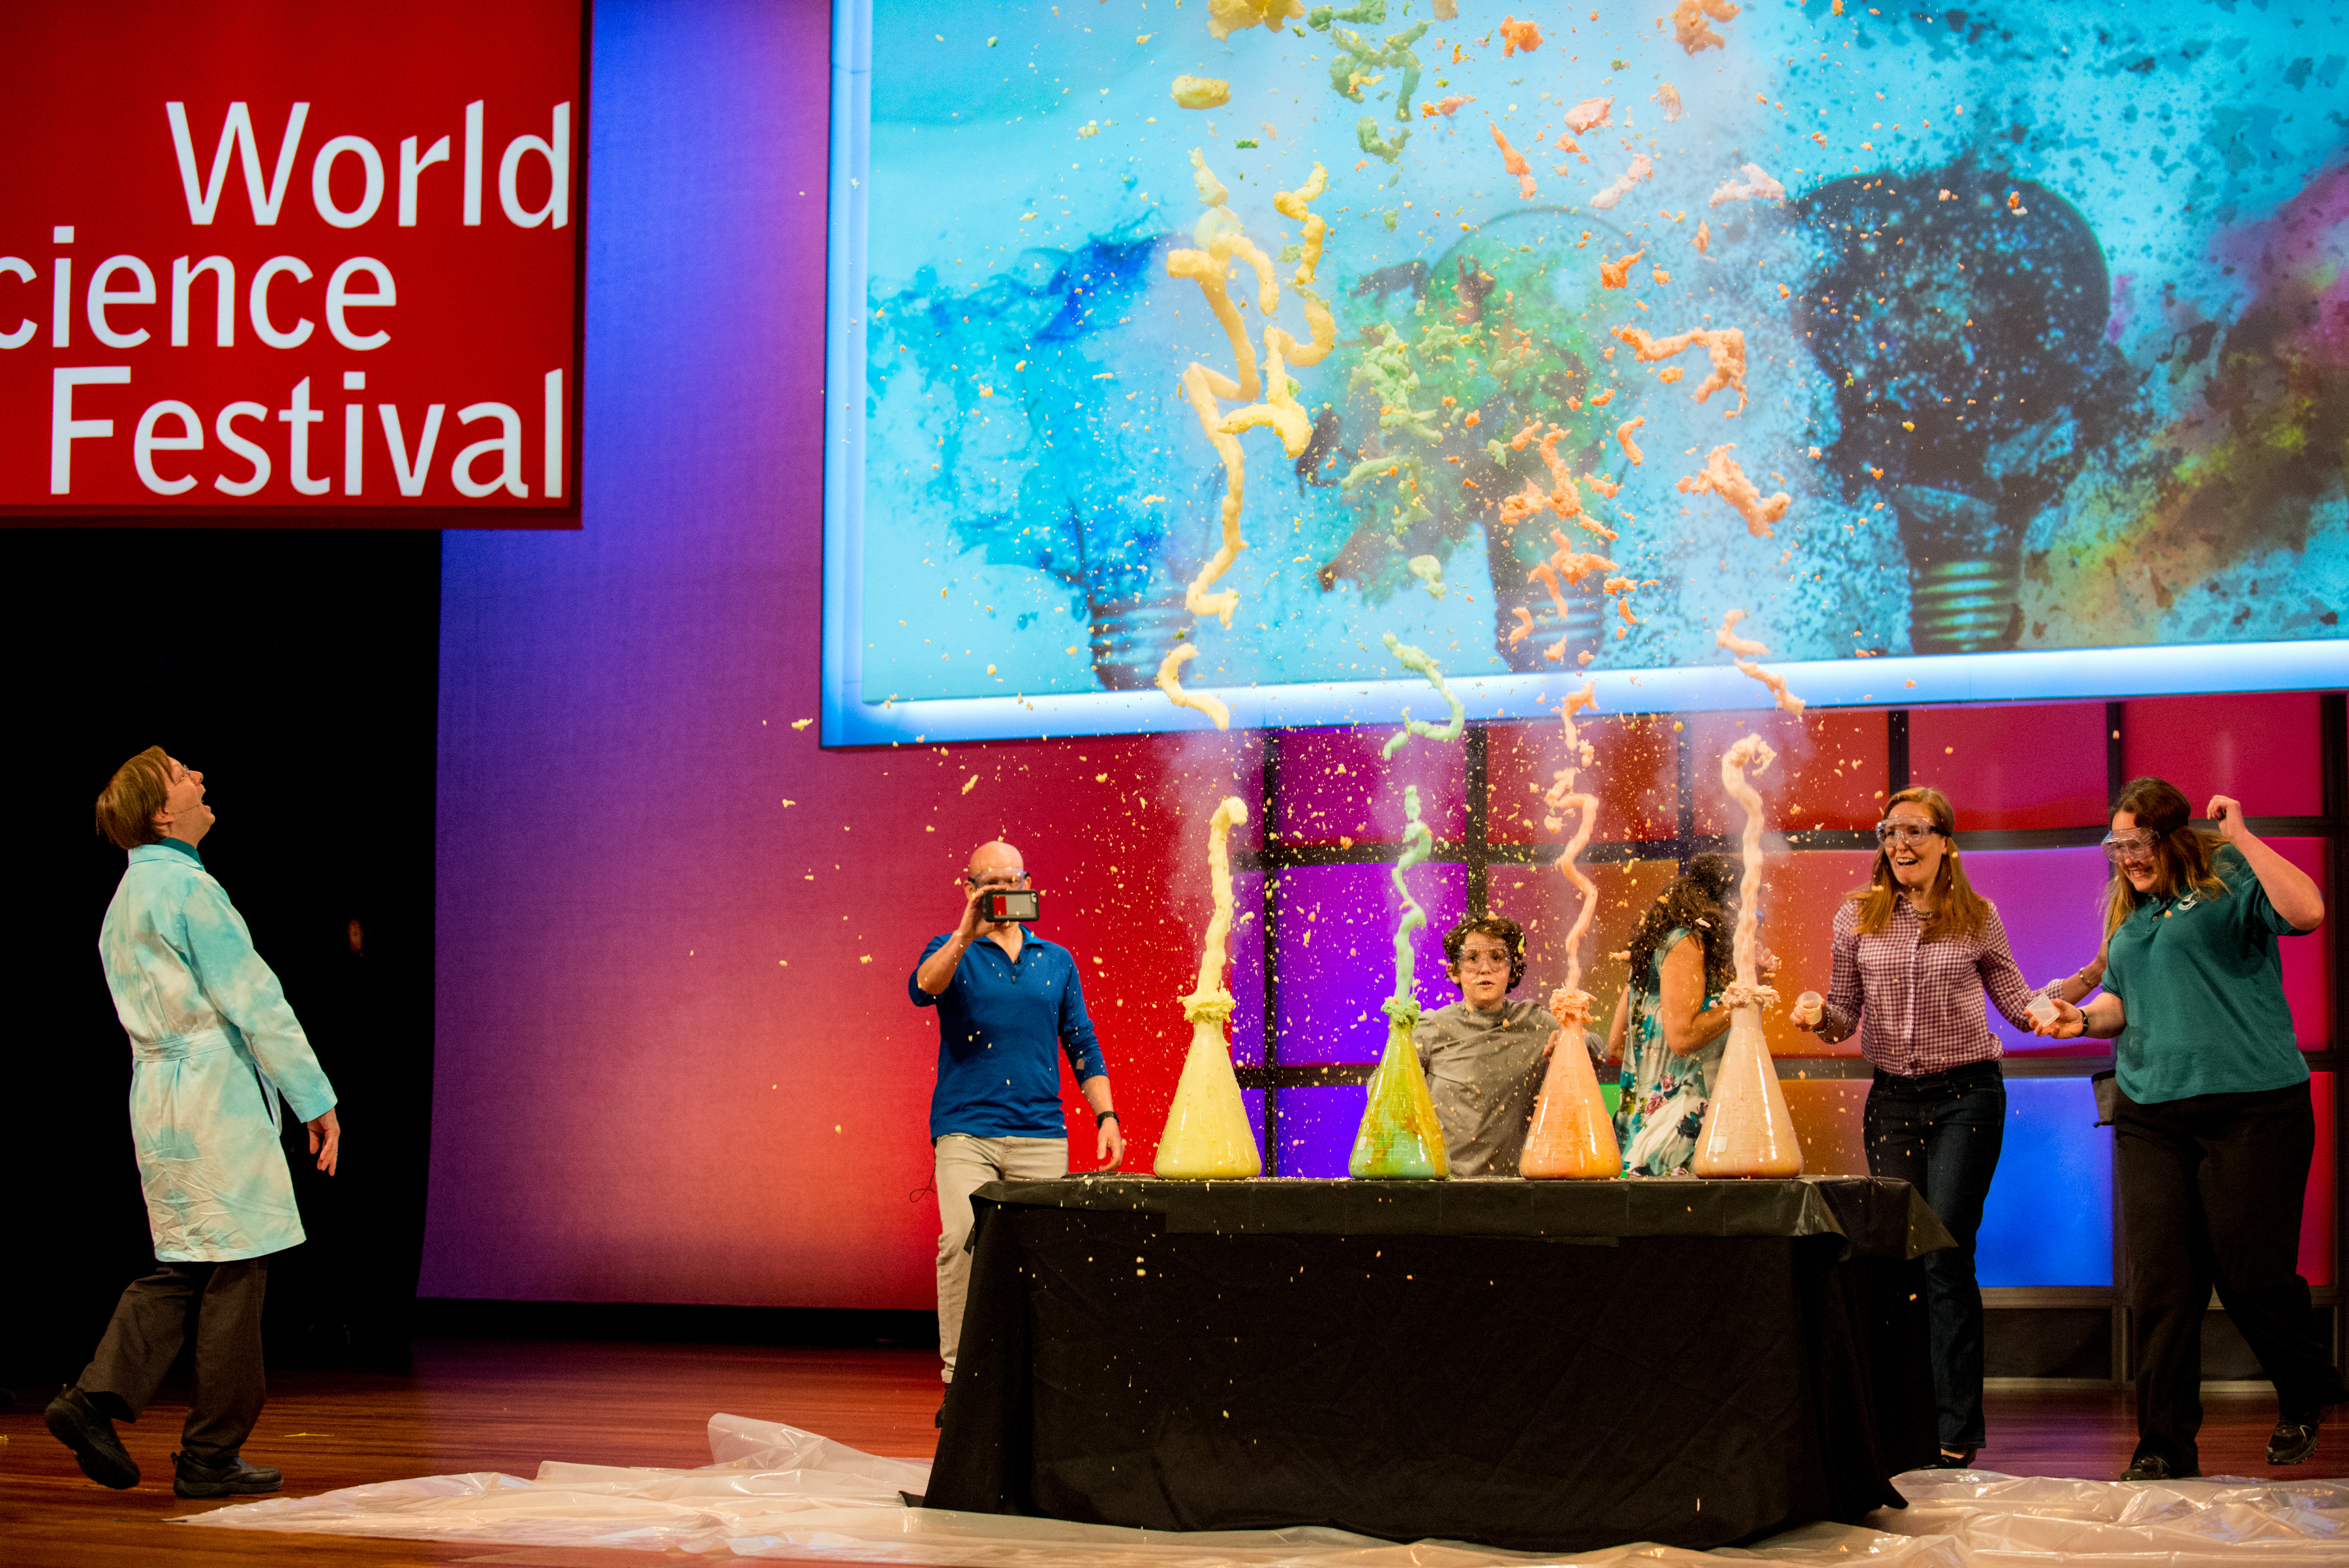 World Science Festival: 6 Days of Science Activities in NYC